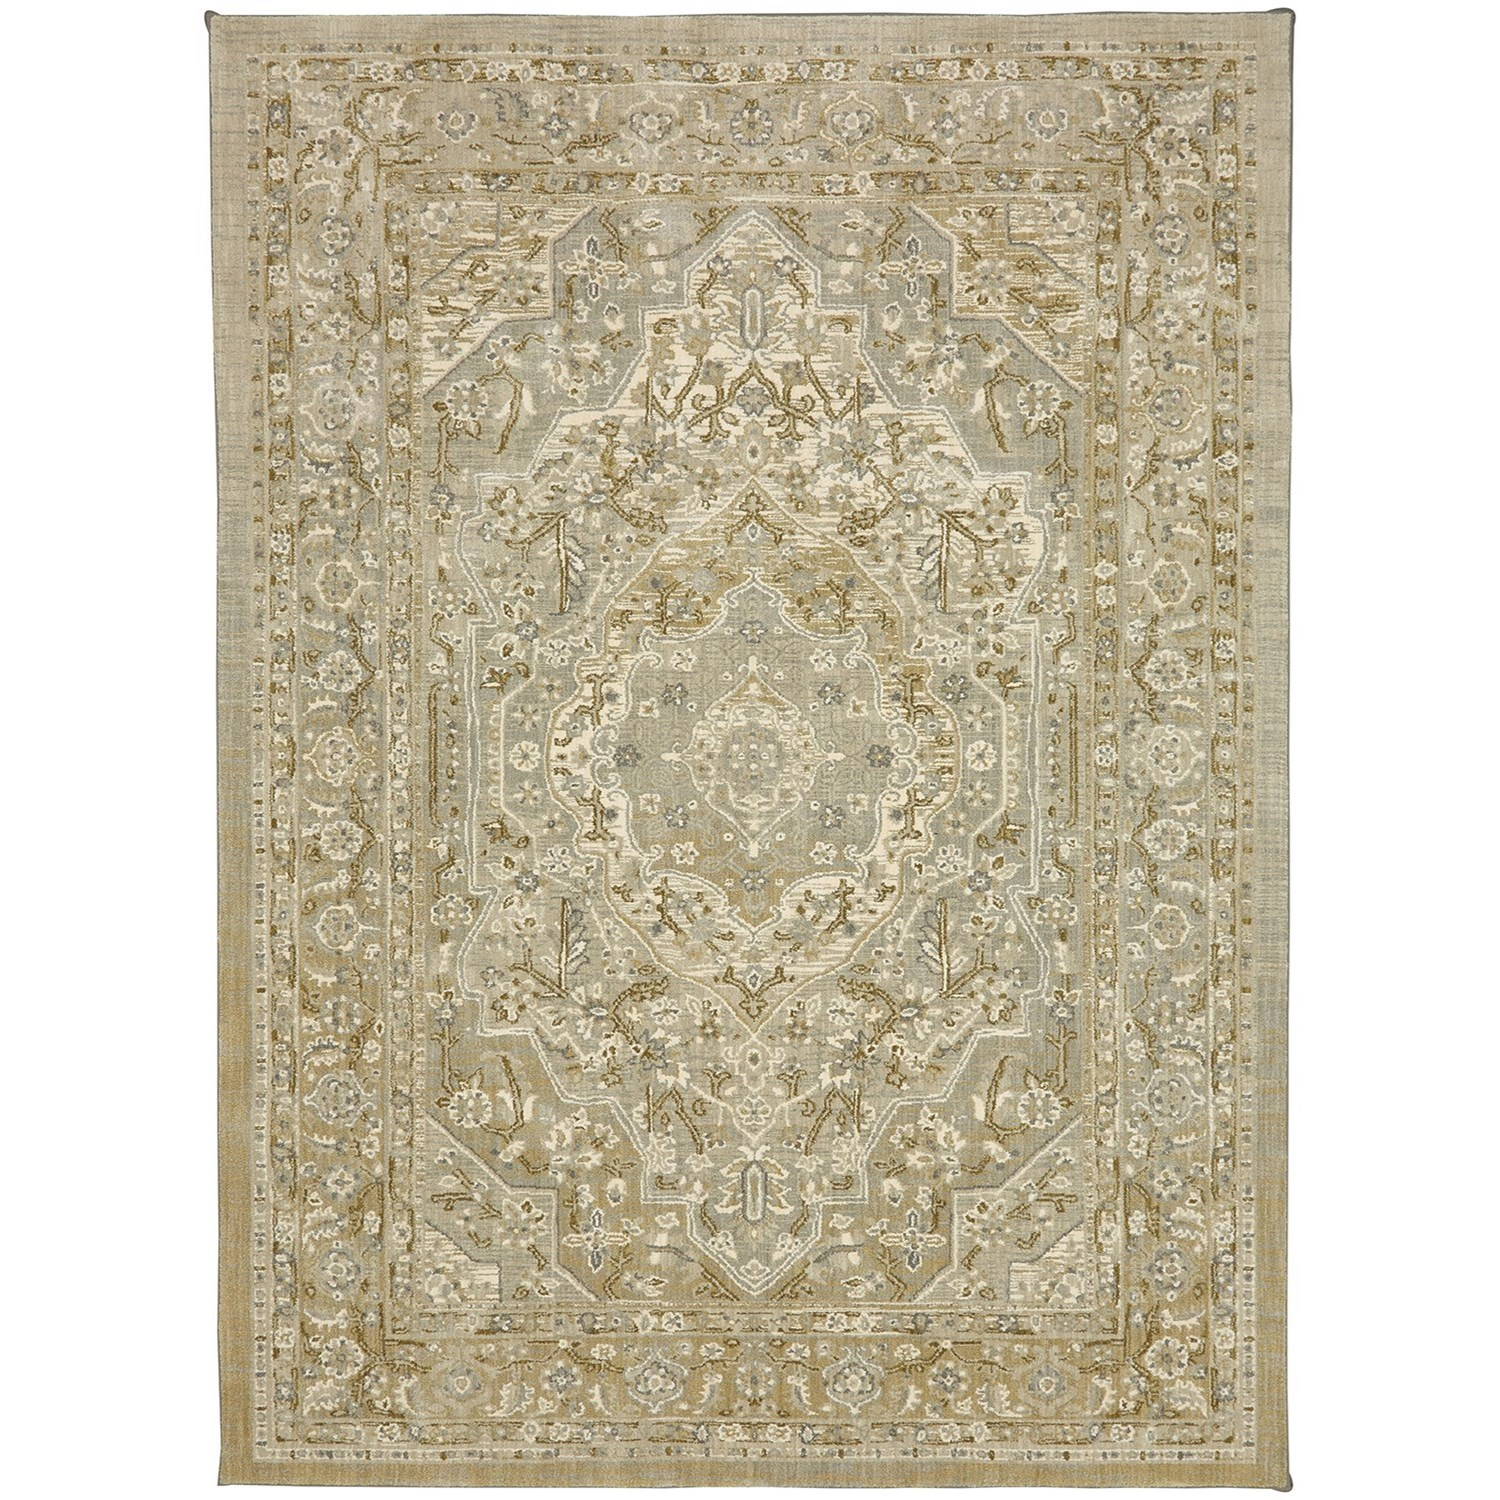 "Touchstone 5' 3""x7' 10"" Rectangle Ornamental Area Rug by Karastan Rugs at Darvin Furniture"